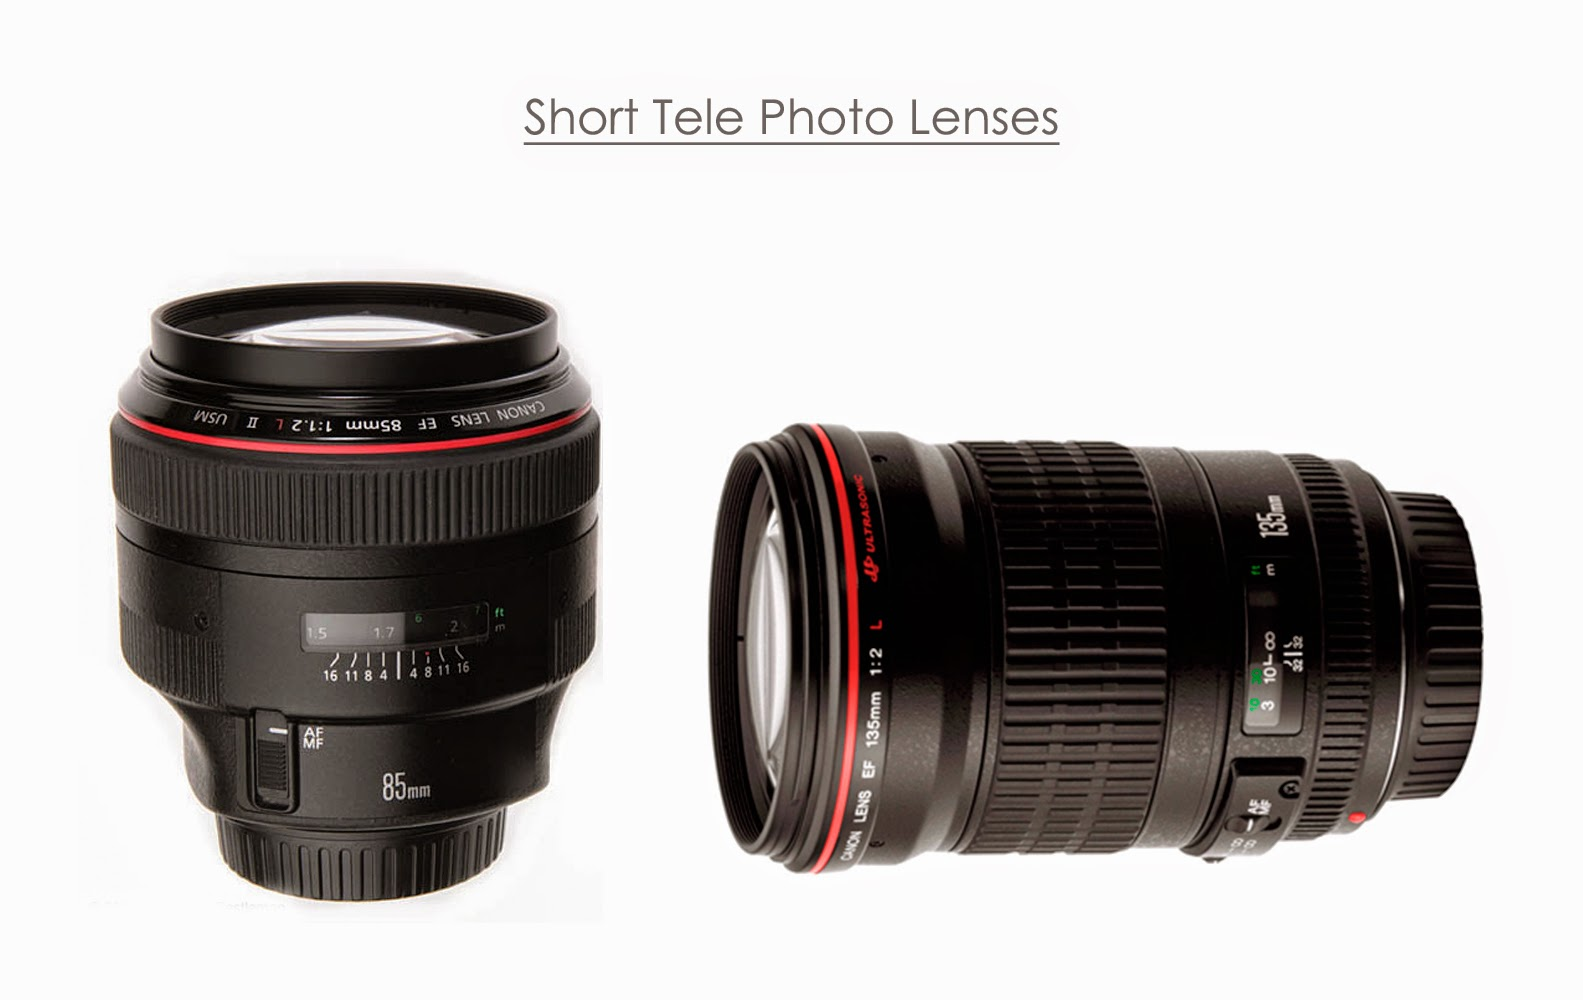 Short Tele Photo Lenses